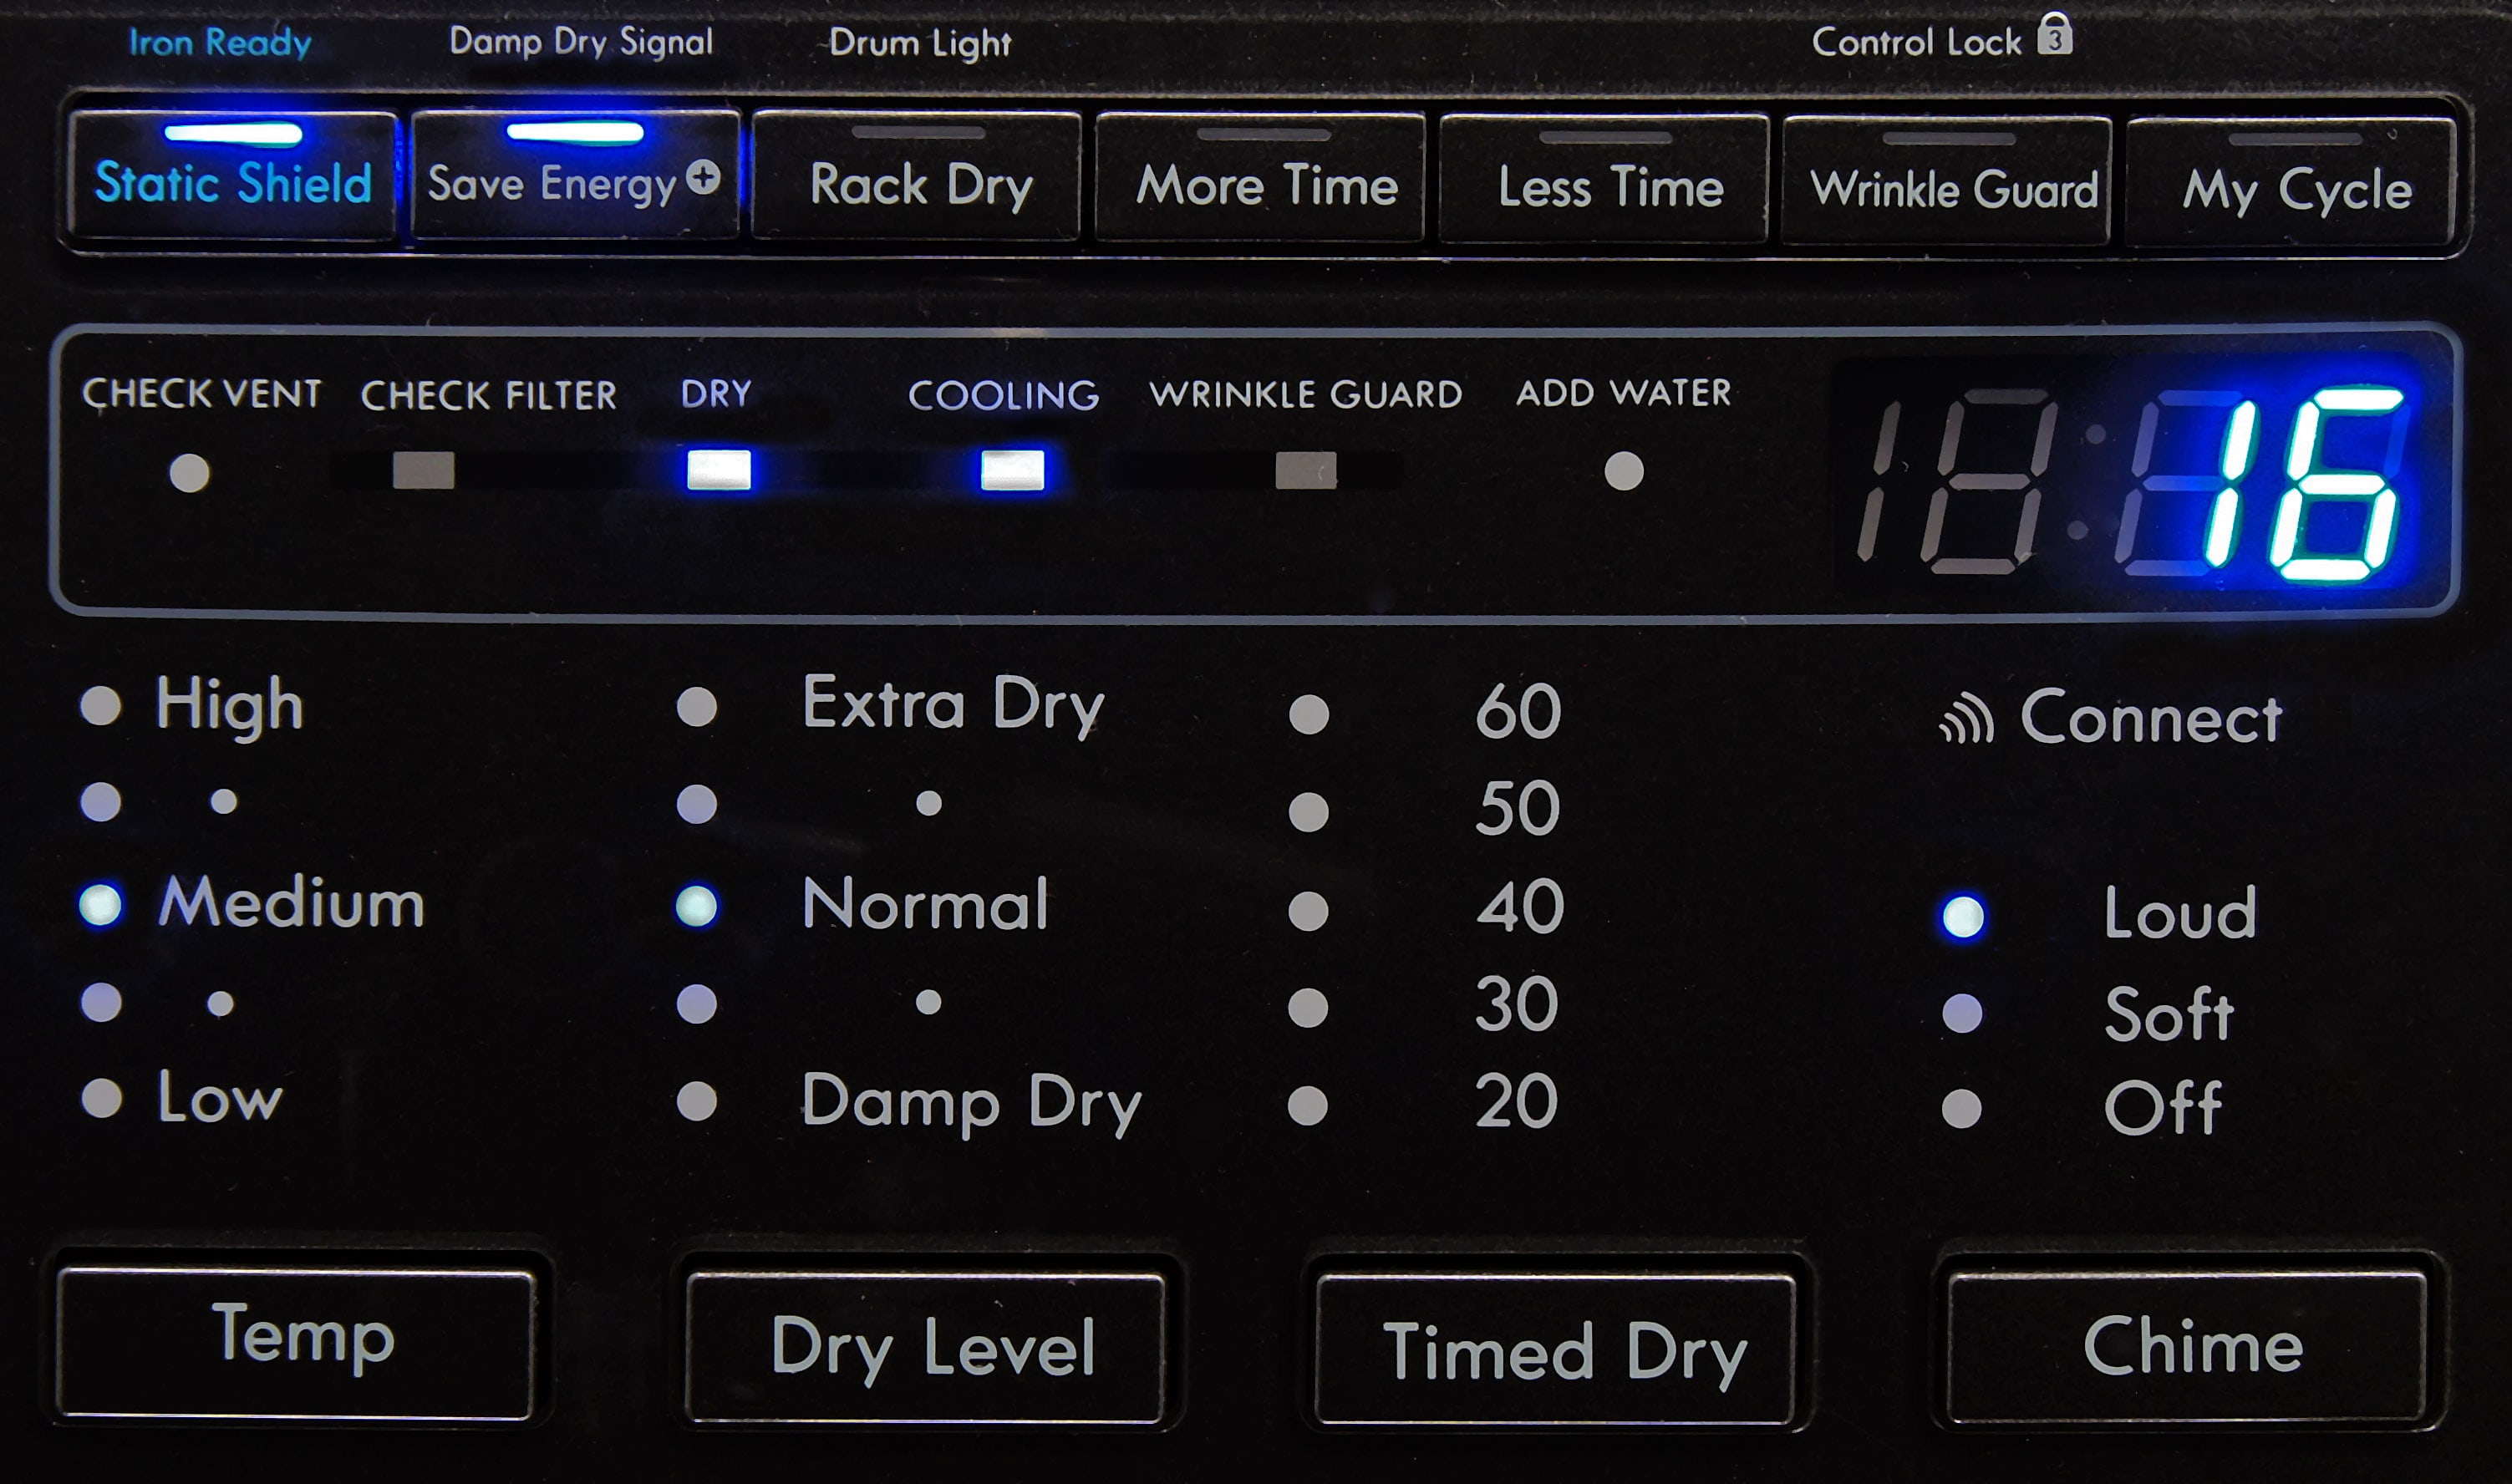 With all the extra options and customizable settings, you might as well call the Kenmore Elite 91583 a Swiss Army dryer.